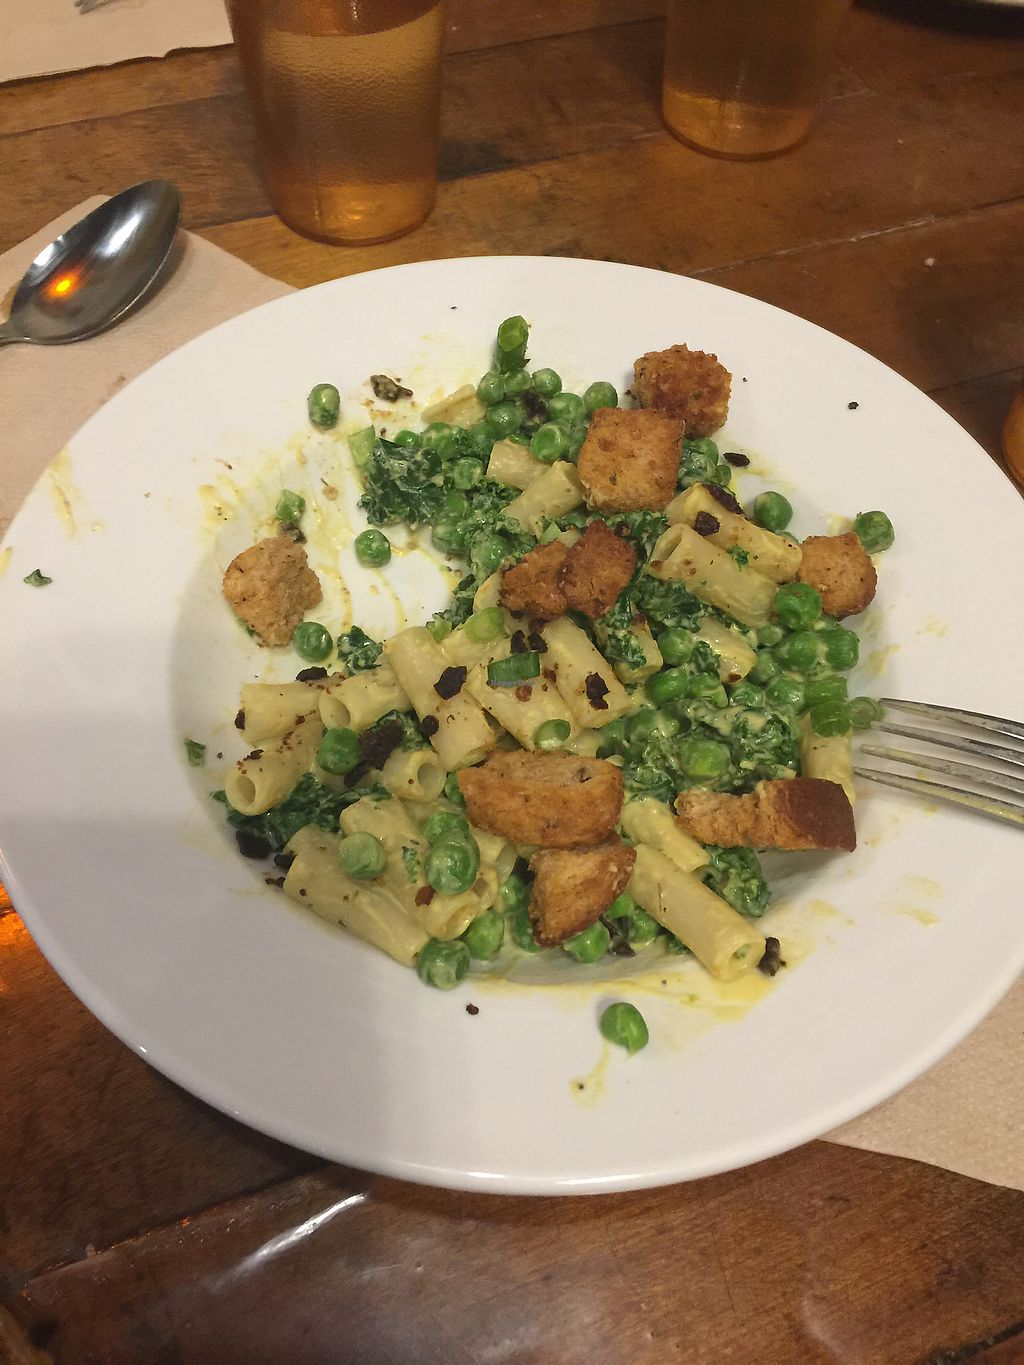 """Photo of Pingala Cafe  by <a href=""""/members/profile/Jennycraig"""">Jennycraig</a> <br/>Mac n Cheese with eggplant bacon and peas. TheBomb.com! <br/> January 25, 2018  - <a href='/contact/abuse/image/45669/350938'>Report</a>"""